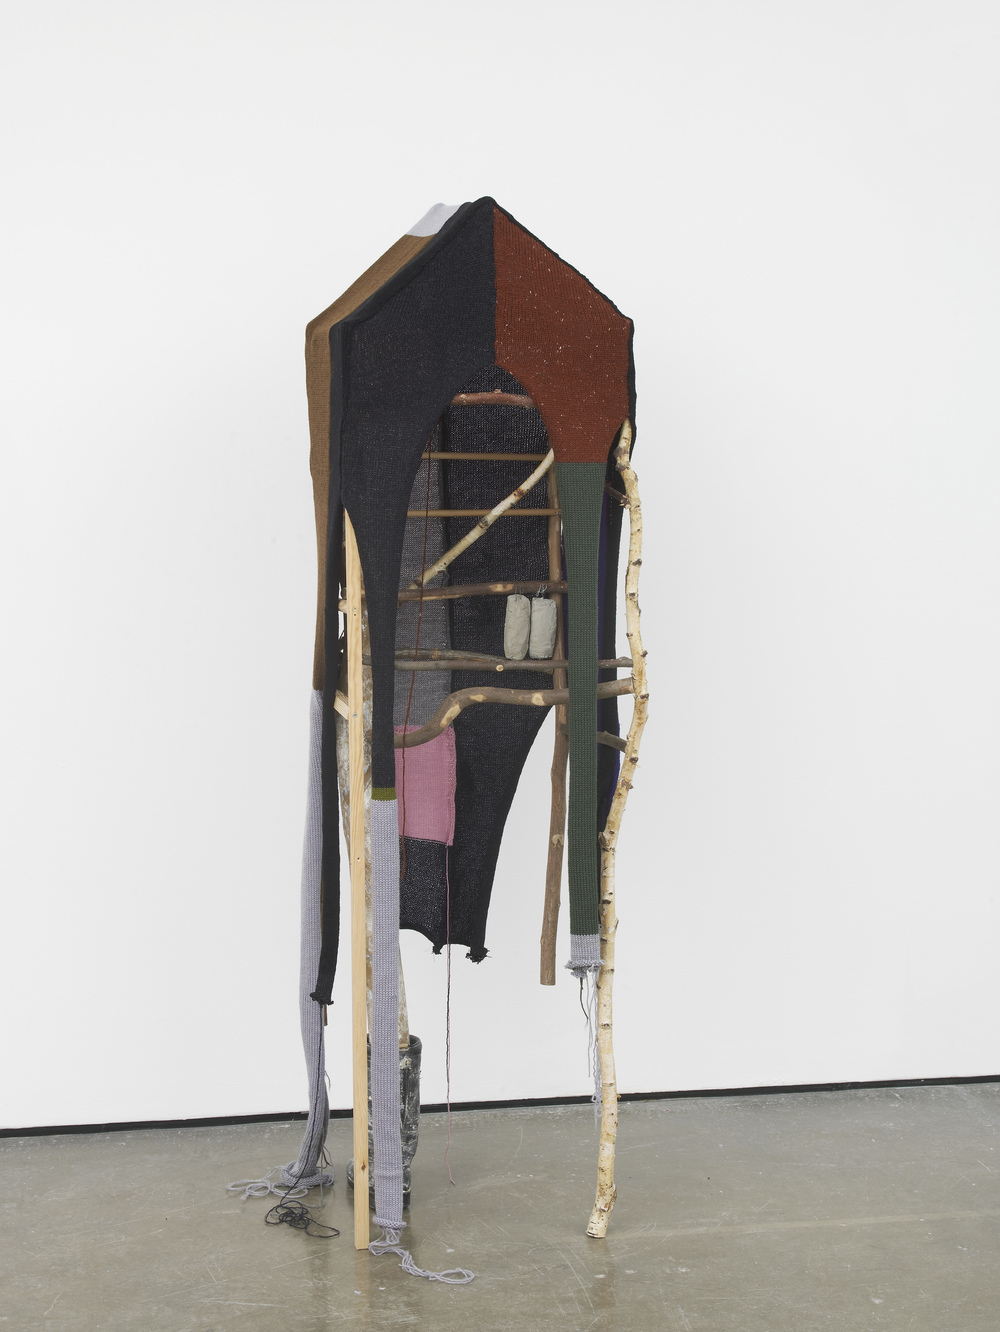 Walking house 2016 Leather boot, plaster, wood, metal, wool 184 x 50 x 60 cm / 72.4 x 19.6 x 23.6 in